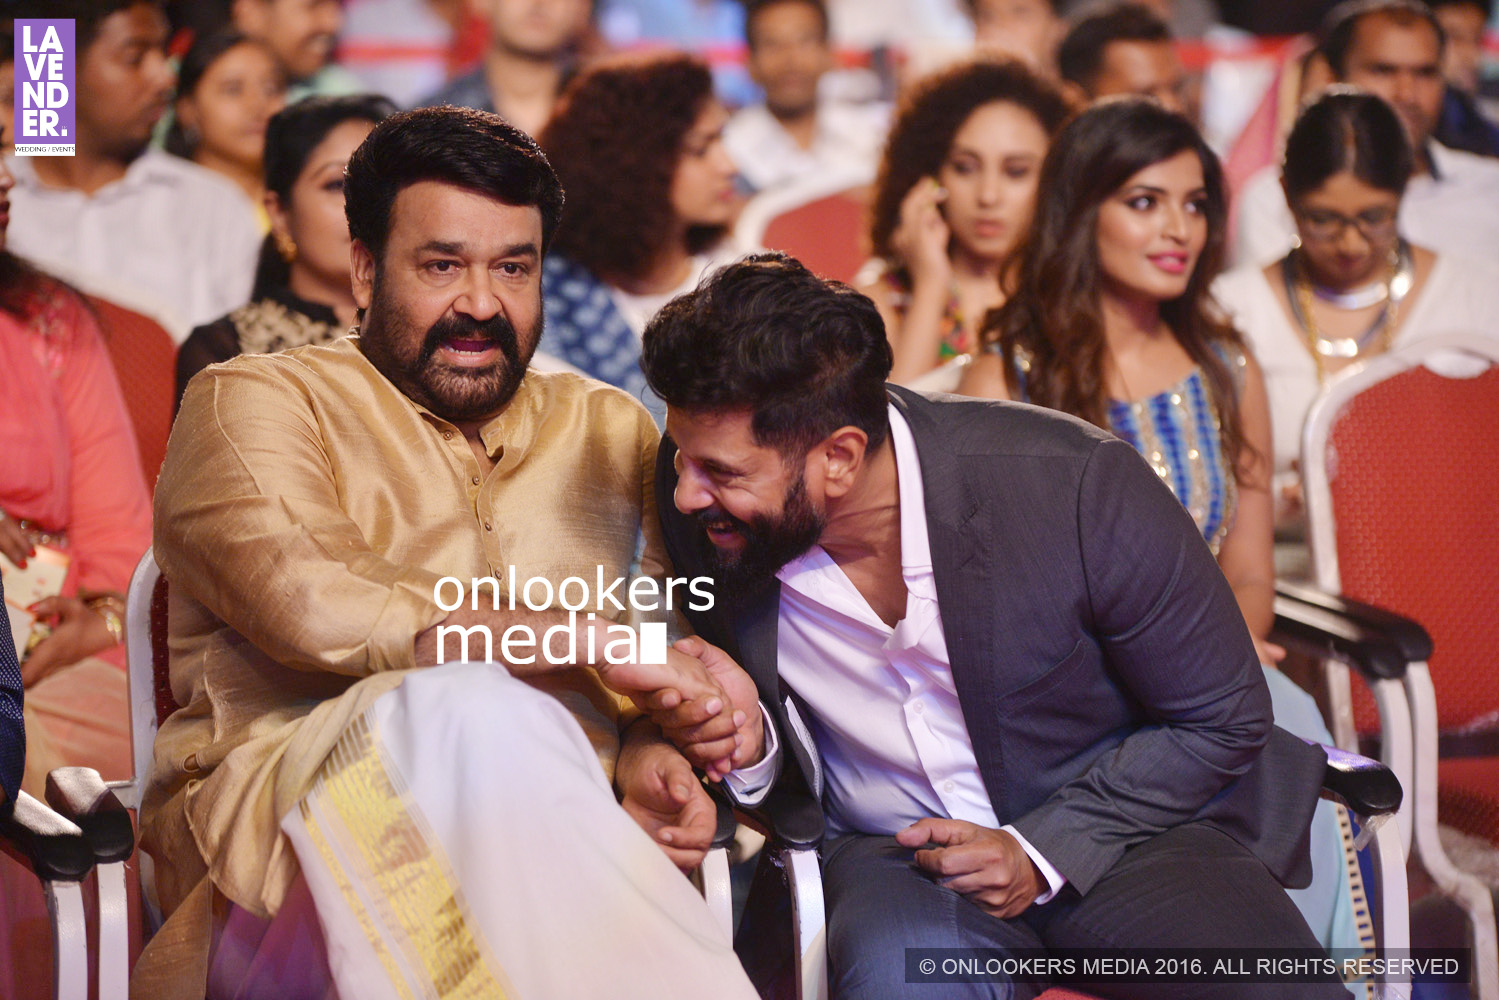 Asianet Film Awards 2016, Asianet award function, mohanlal at Asianet film award, prithviraj at Asianet film award, malayalam movie 2016,18th asianet film awards, vikram prithviraj, mohanlal vikram movie,